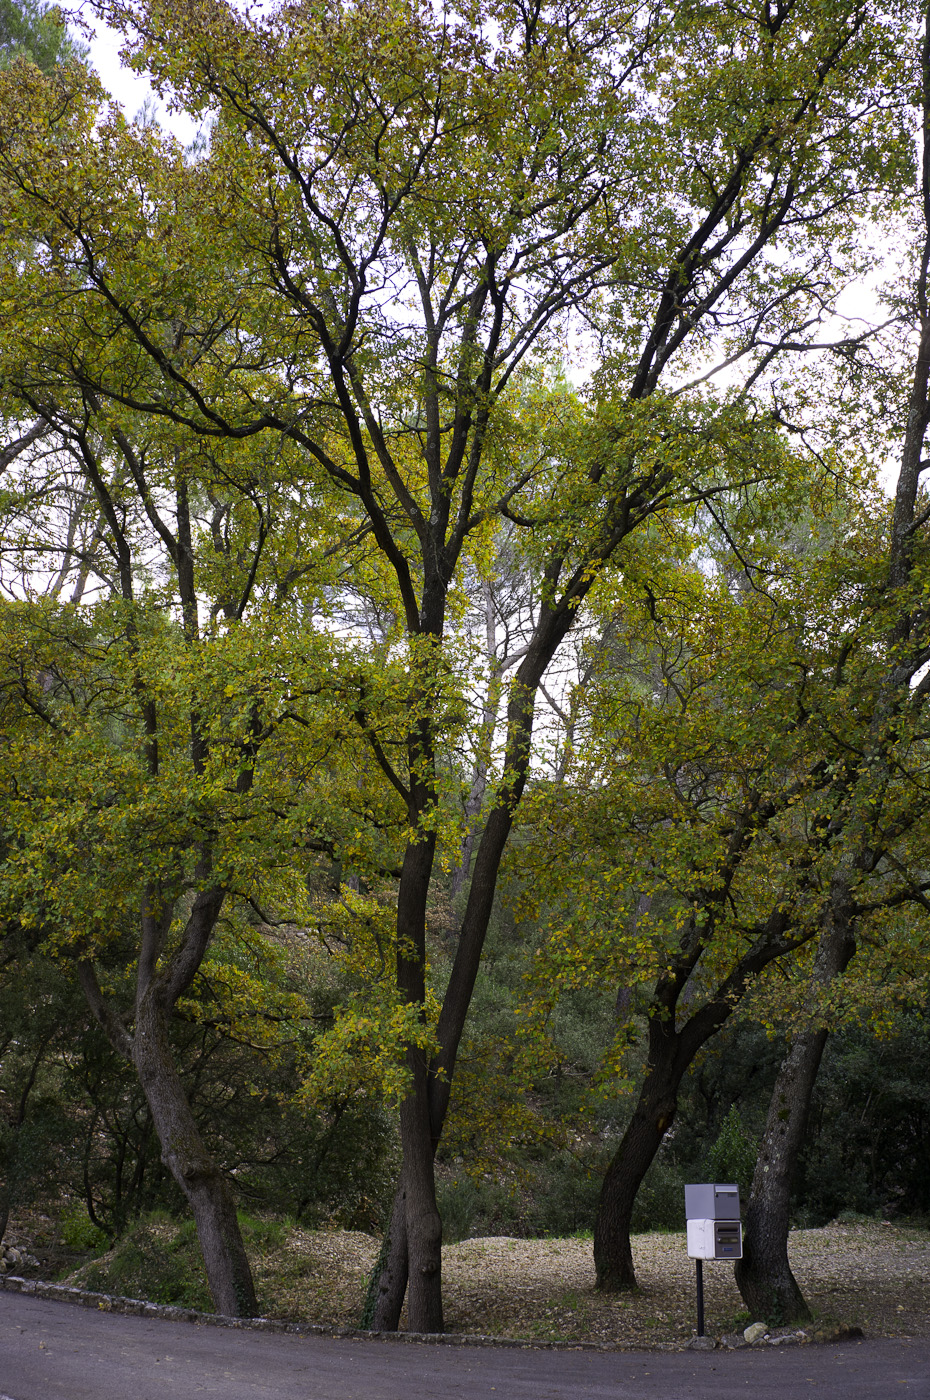 Yellow green trees in autumn, Sony NEX-5N & Zeiss ZM Biogon 25